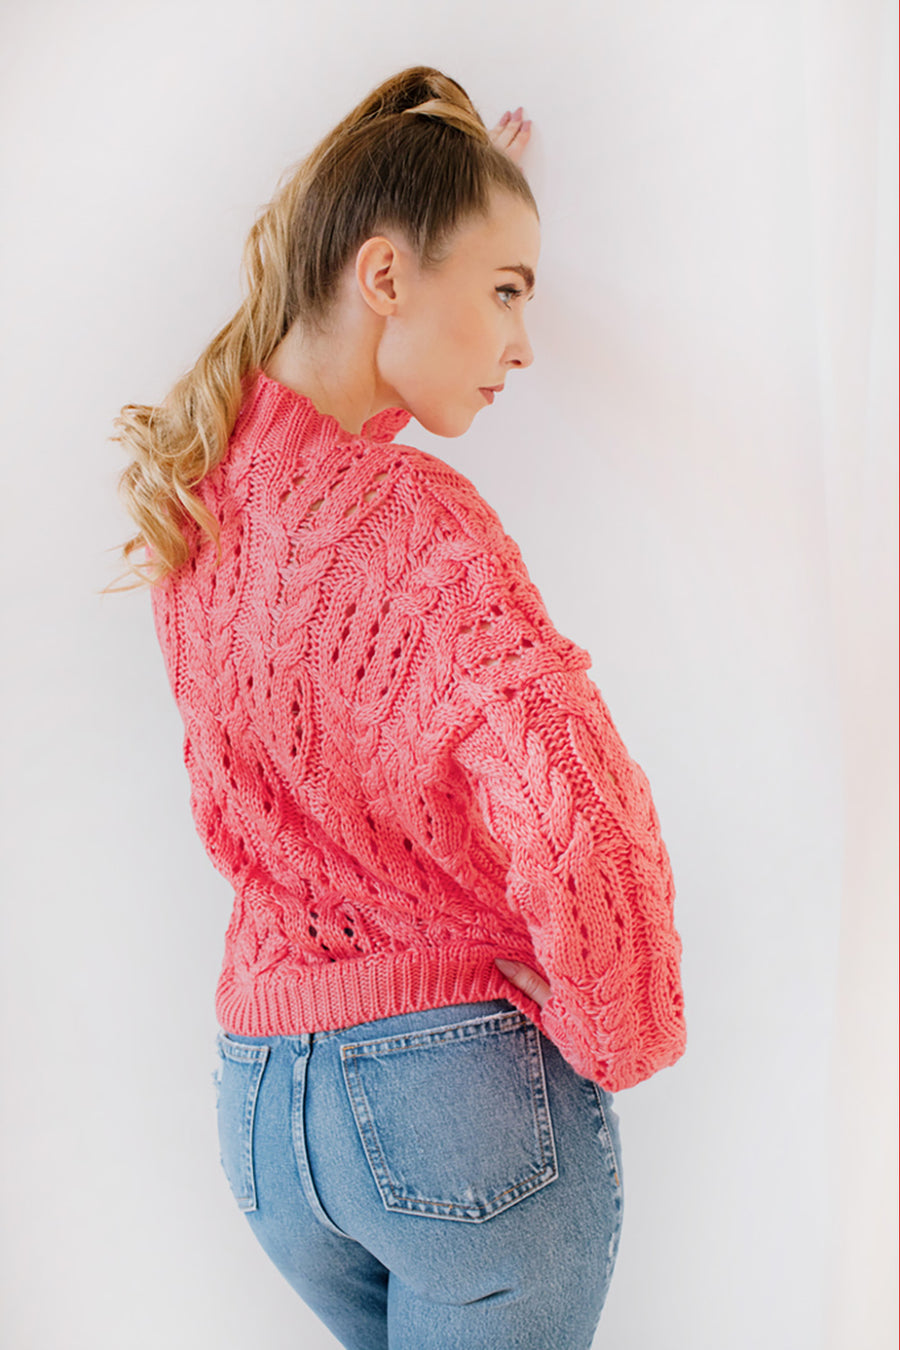 Cardigan model 152568 Lemoniade